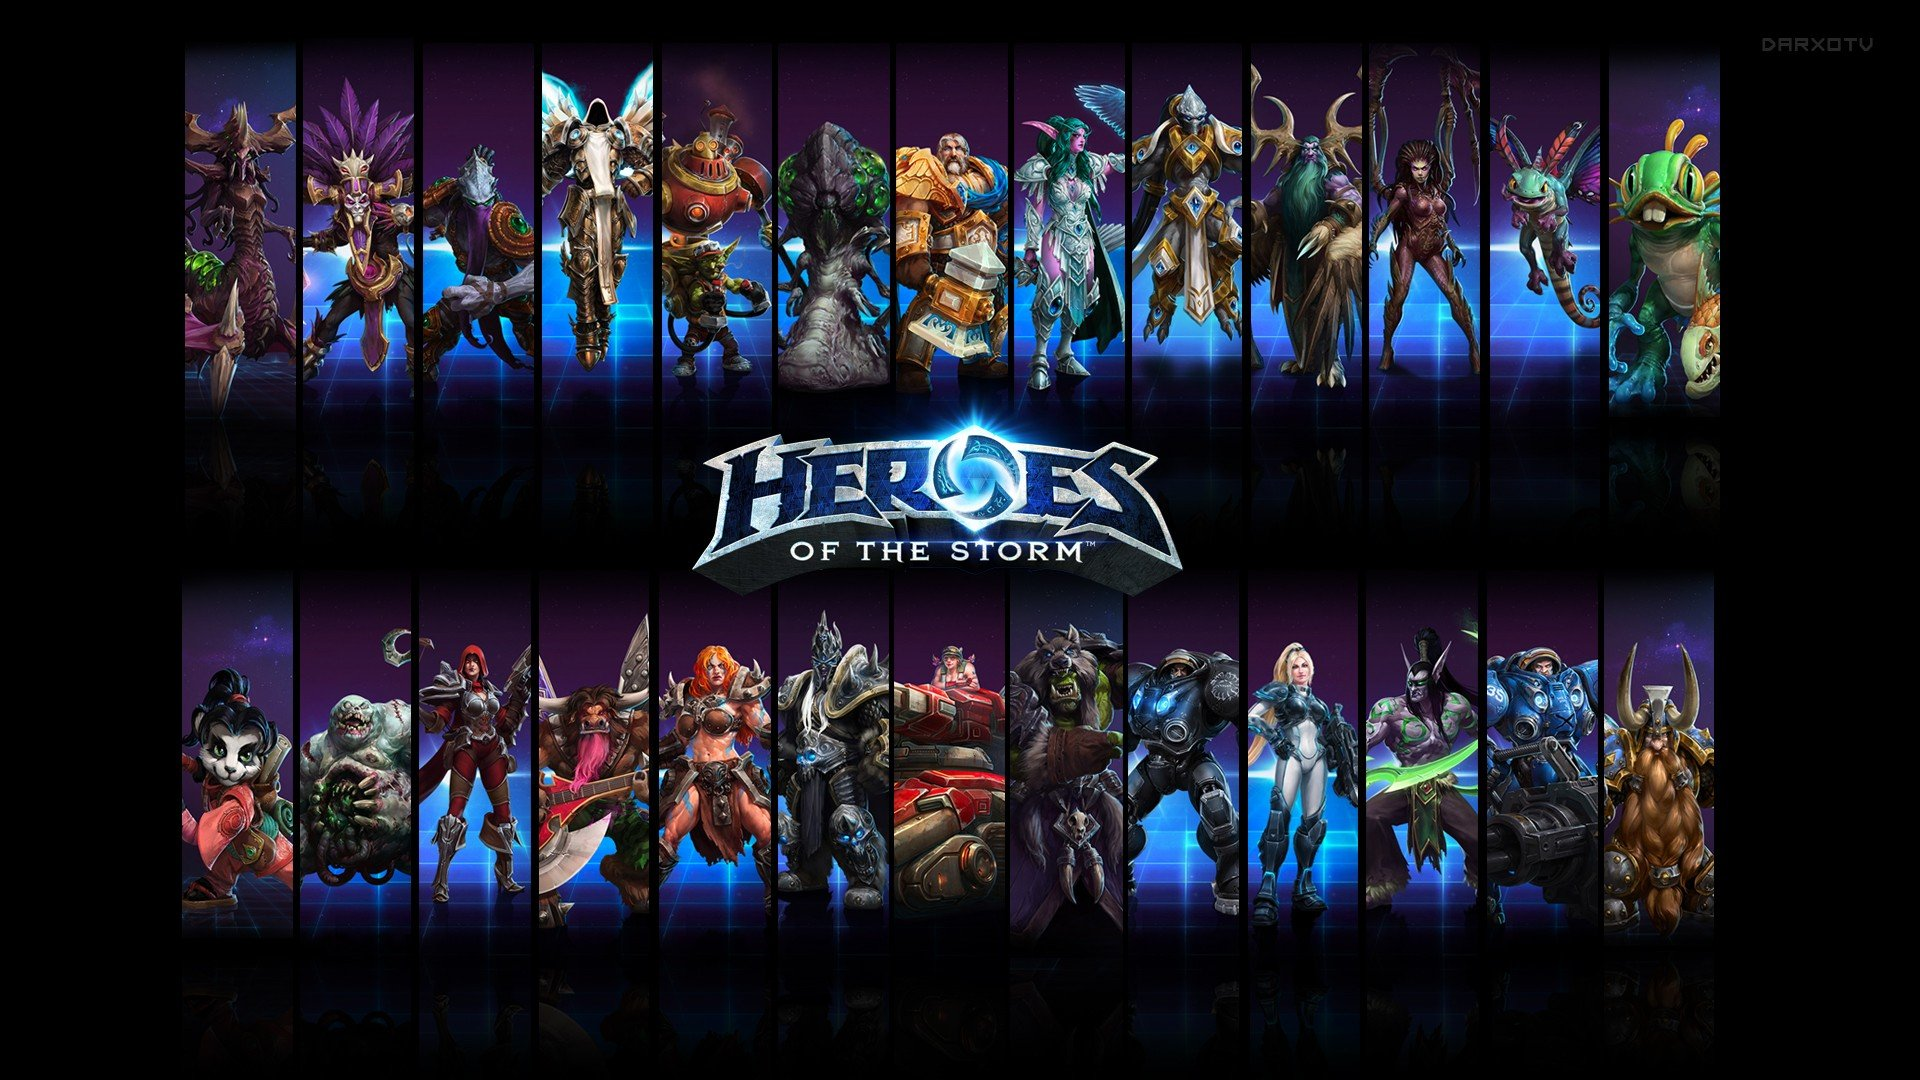 Heroes Of The Storm Blizzard Entertainment Hd Wallpapers